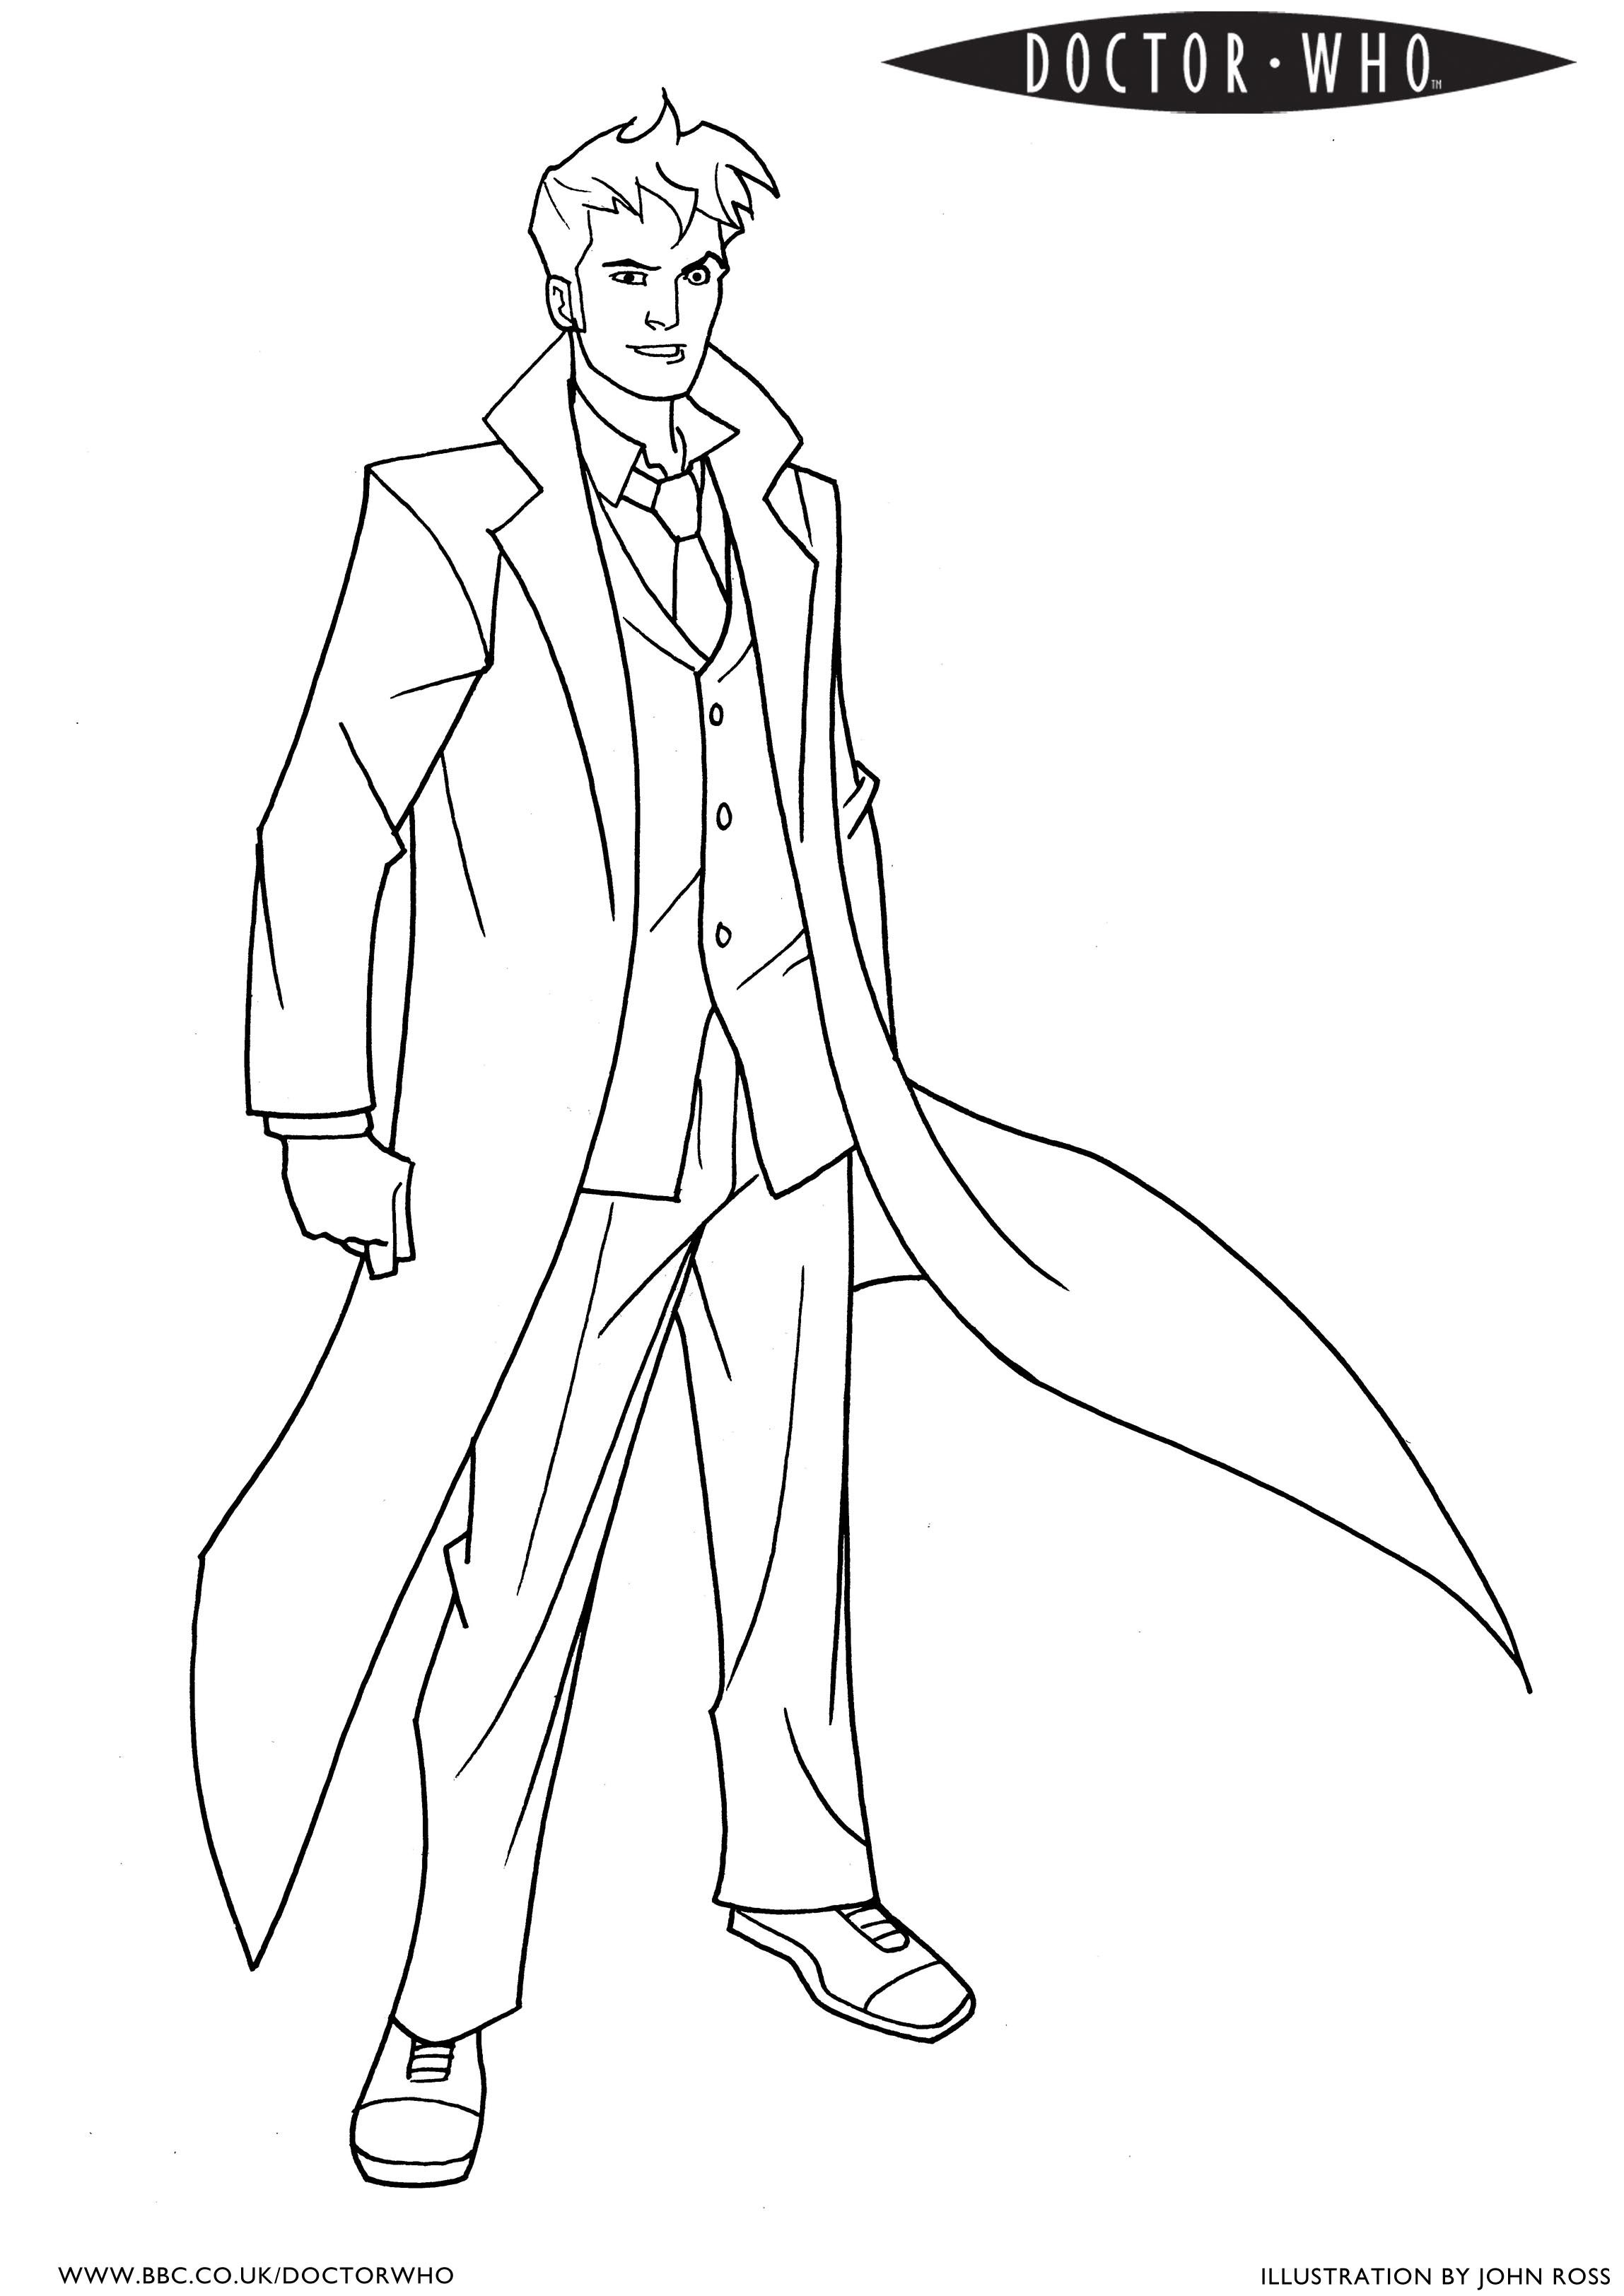 Coloring pages for doctors - An Official Bbc David Tennant Coloring Page 3